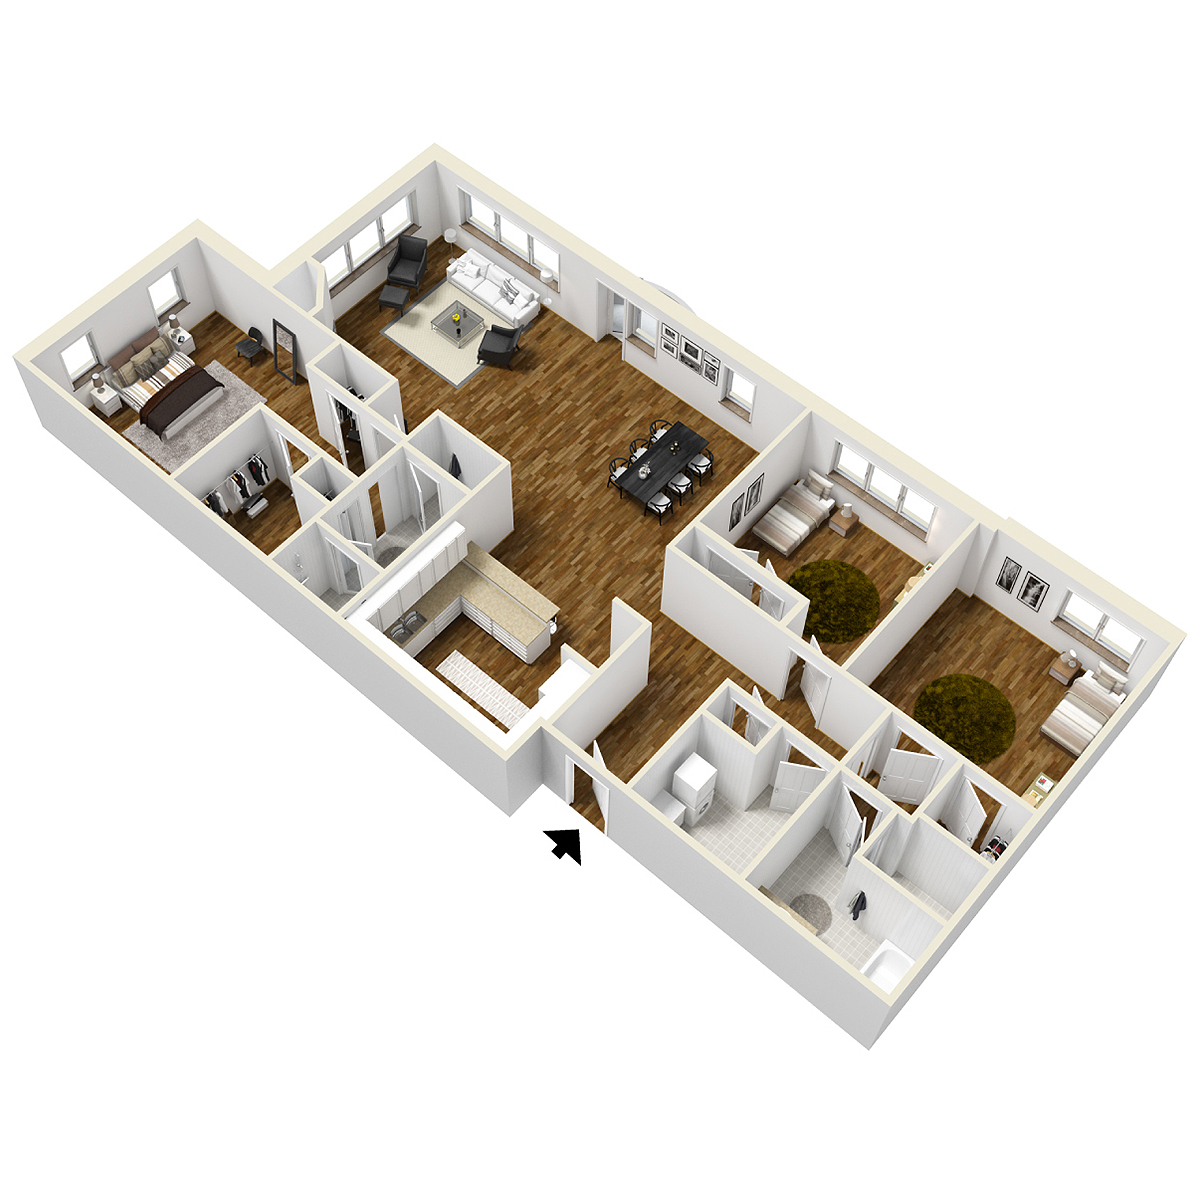 typical penthouse layout